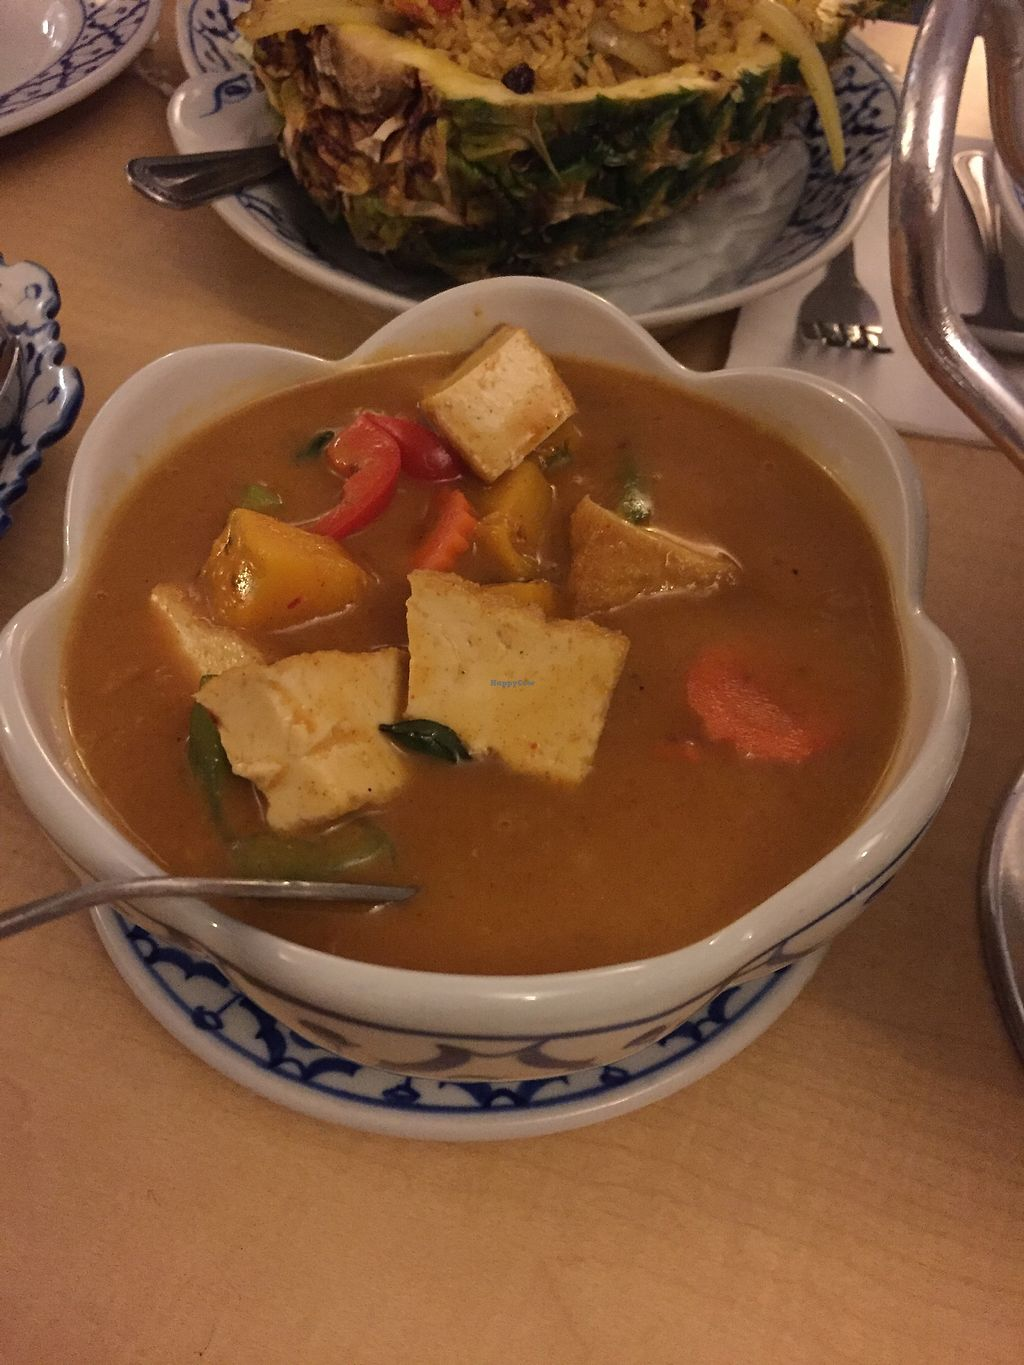 """Photo of Thai House  by <a href=""""/members/profile/Bariann"""">Bariann</a> <br/>Pumpkin Curry with Tofu <br/> March 21, 2018  - <a href='/contact/abuse/image/115141/373519'>Report</a>"""